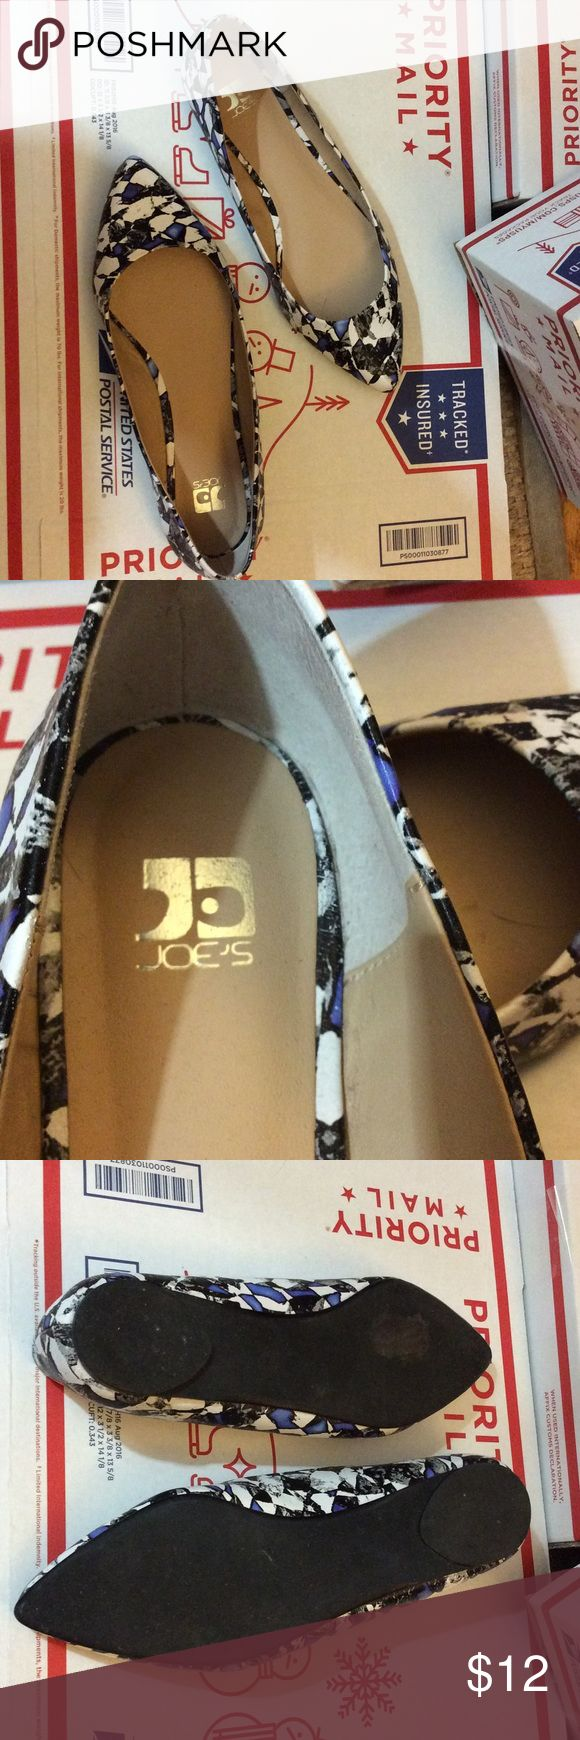 Super cute design Joe's shoe flats Joe's shoes Cute abstract design Pointy toe Gently used condition Leather upper man-made soles Joe's Jeans Shoes Flats & Loafers